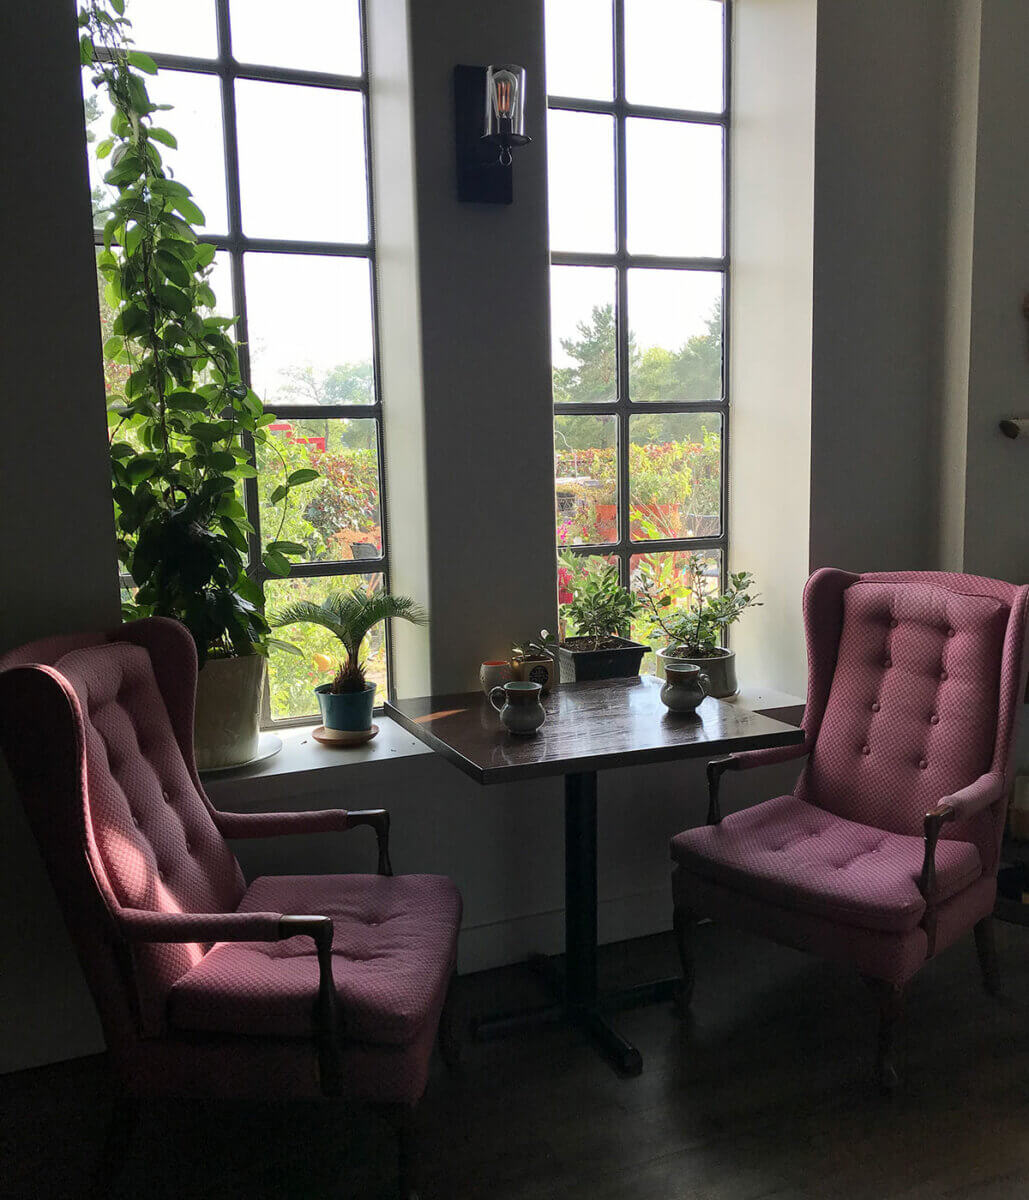 2 pink chairs beside a window ready for afternoon tea, part of the Regina February City Guide